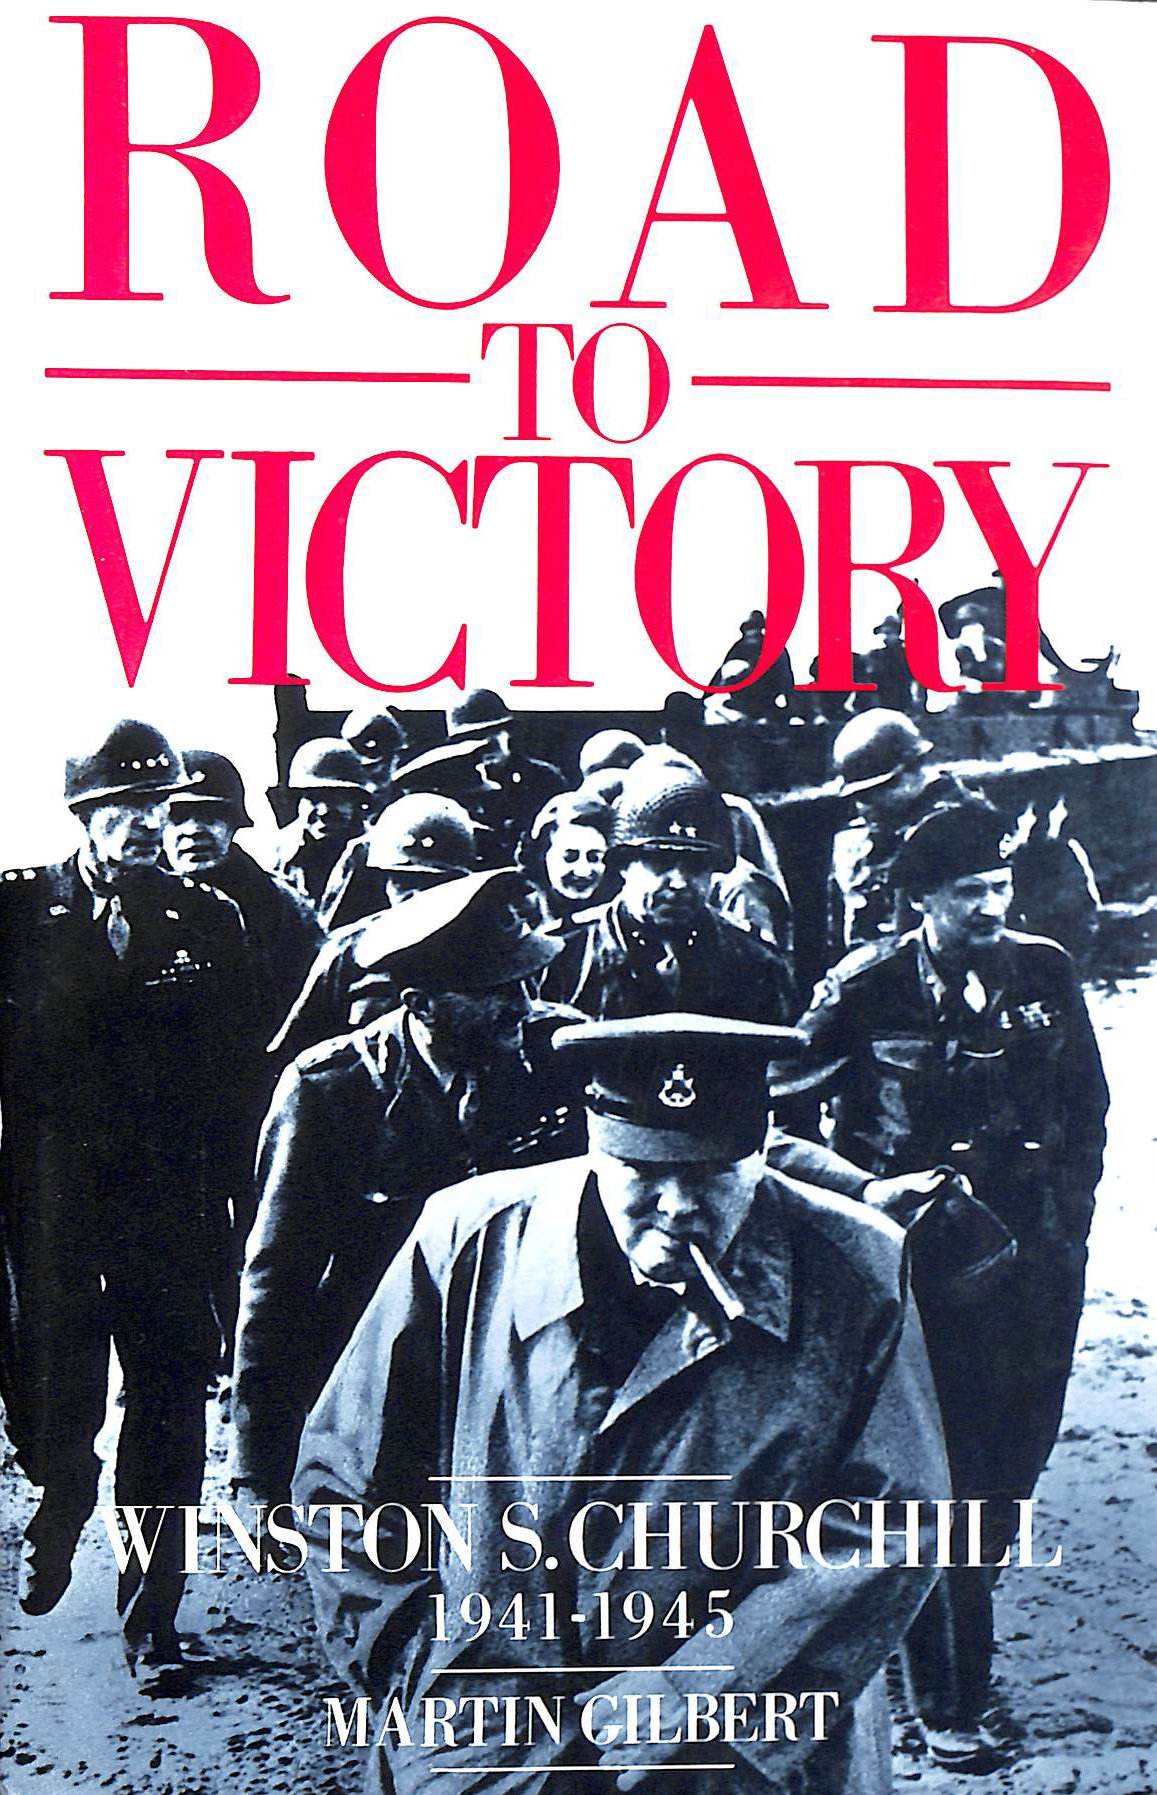 Image for Churchill, Winston S.: Road to Victory, 1941-45 v. 7